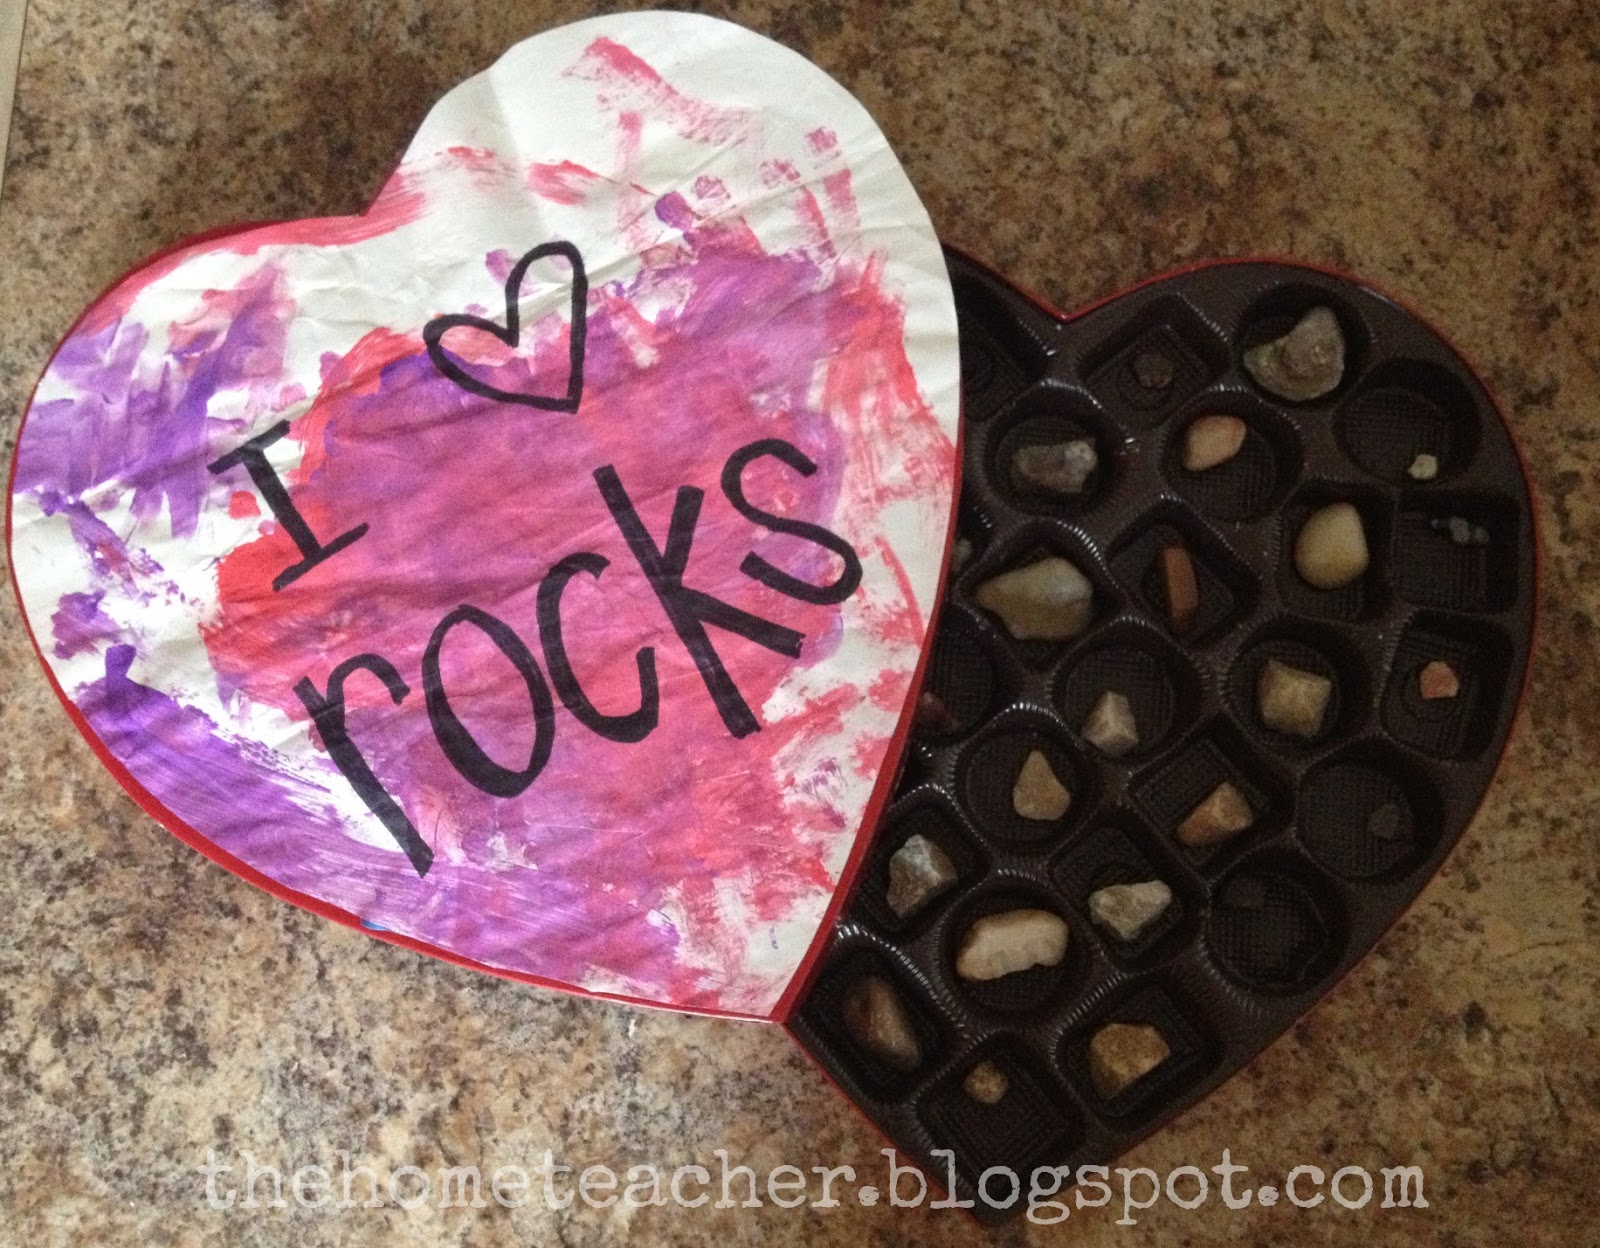 Heart Rock Collections - The Home Teacher